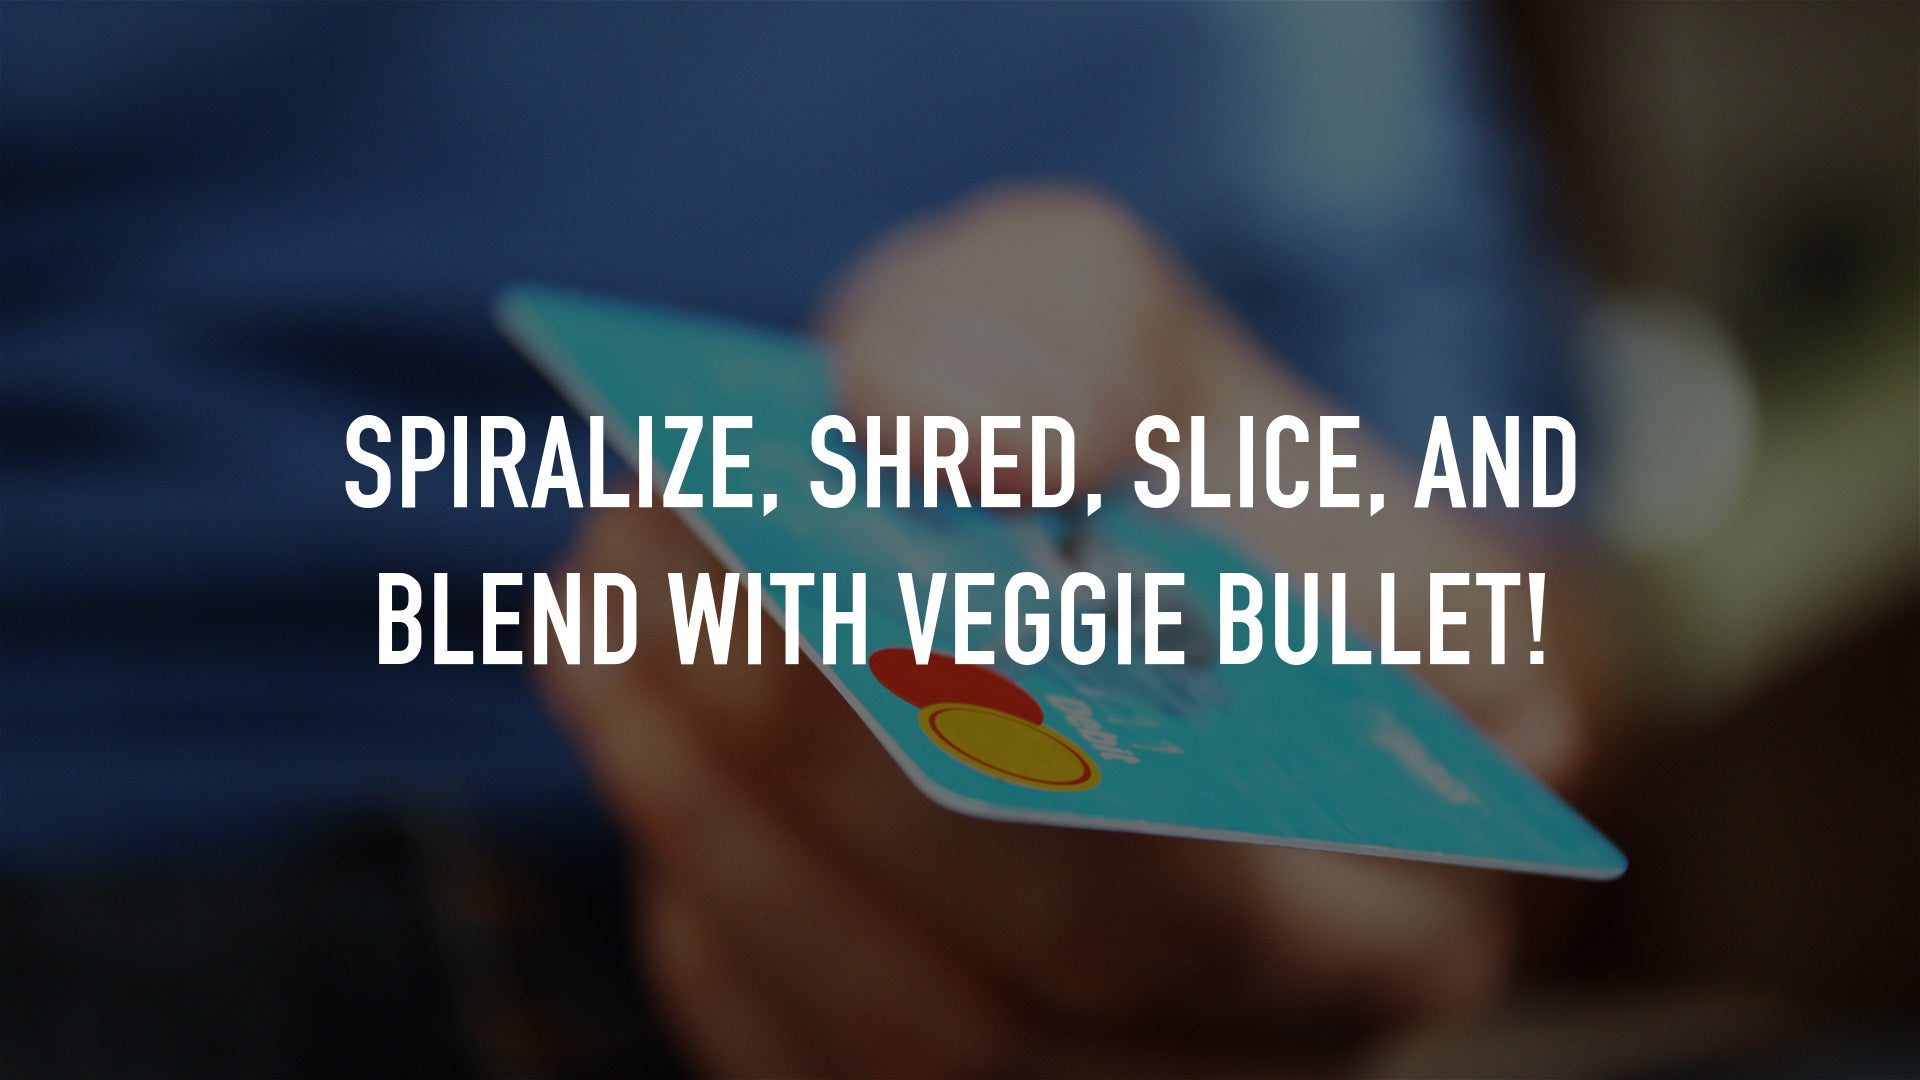 Spiralize, Shred, Slice, and Blend with Veggie Bullet!